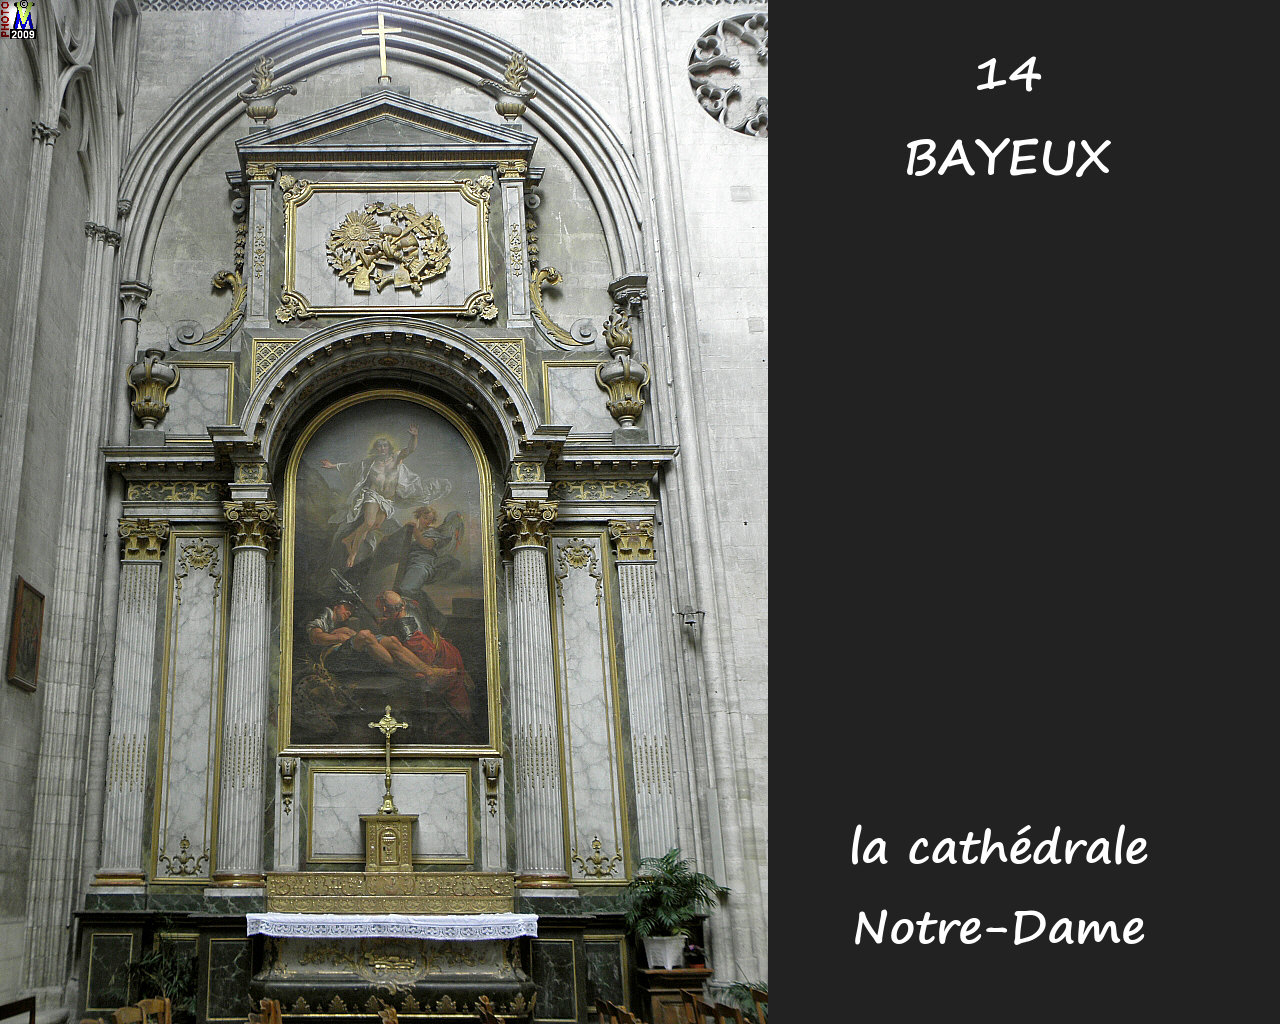 14BAYEUX_cathedrale_234.jpg